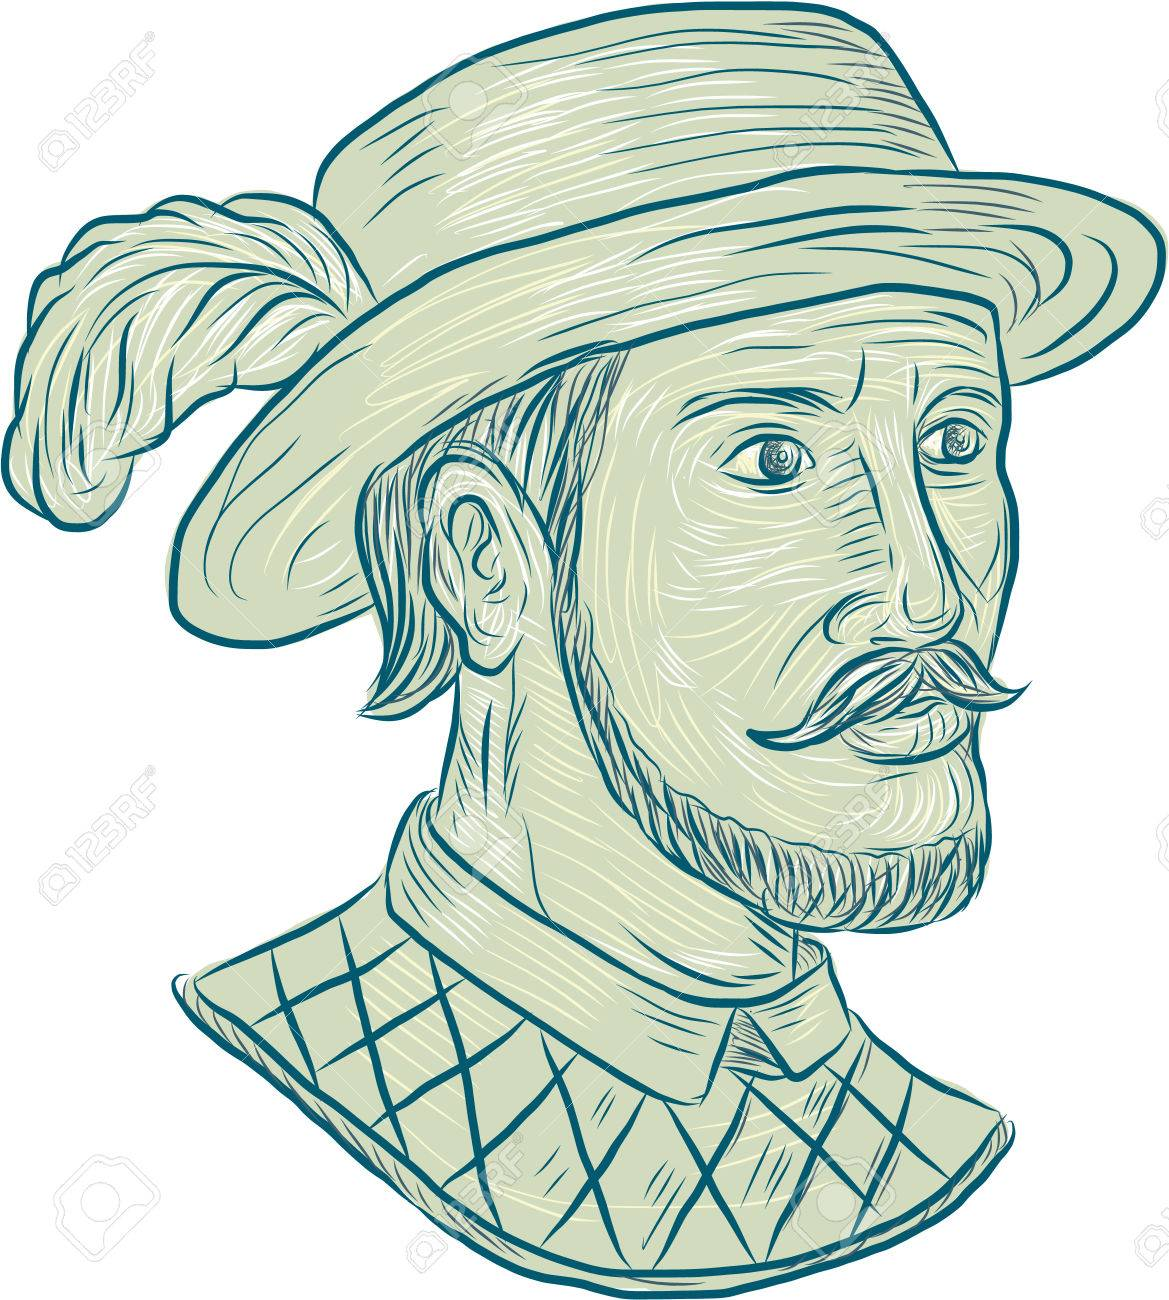 a biography of juan ponce de leon a spanish soldier and conquistador Biography project juan ponce de leon juan was a spanish conquistador that spent most of his time exploring at a younger age he was a soldier for a fighting.